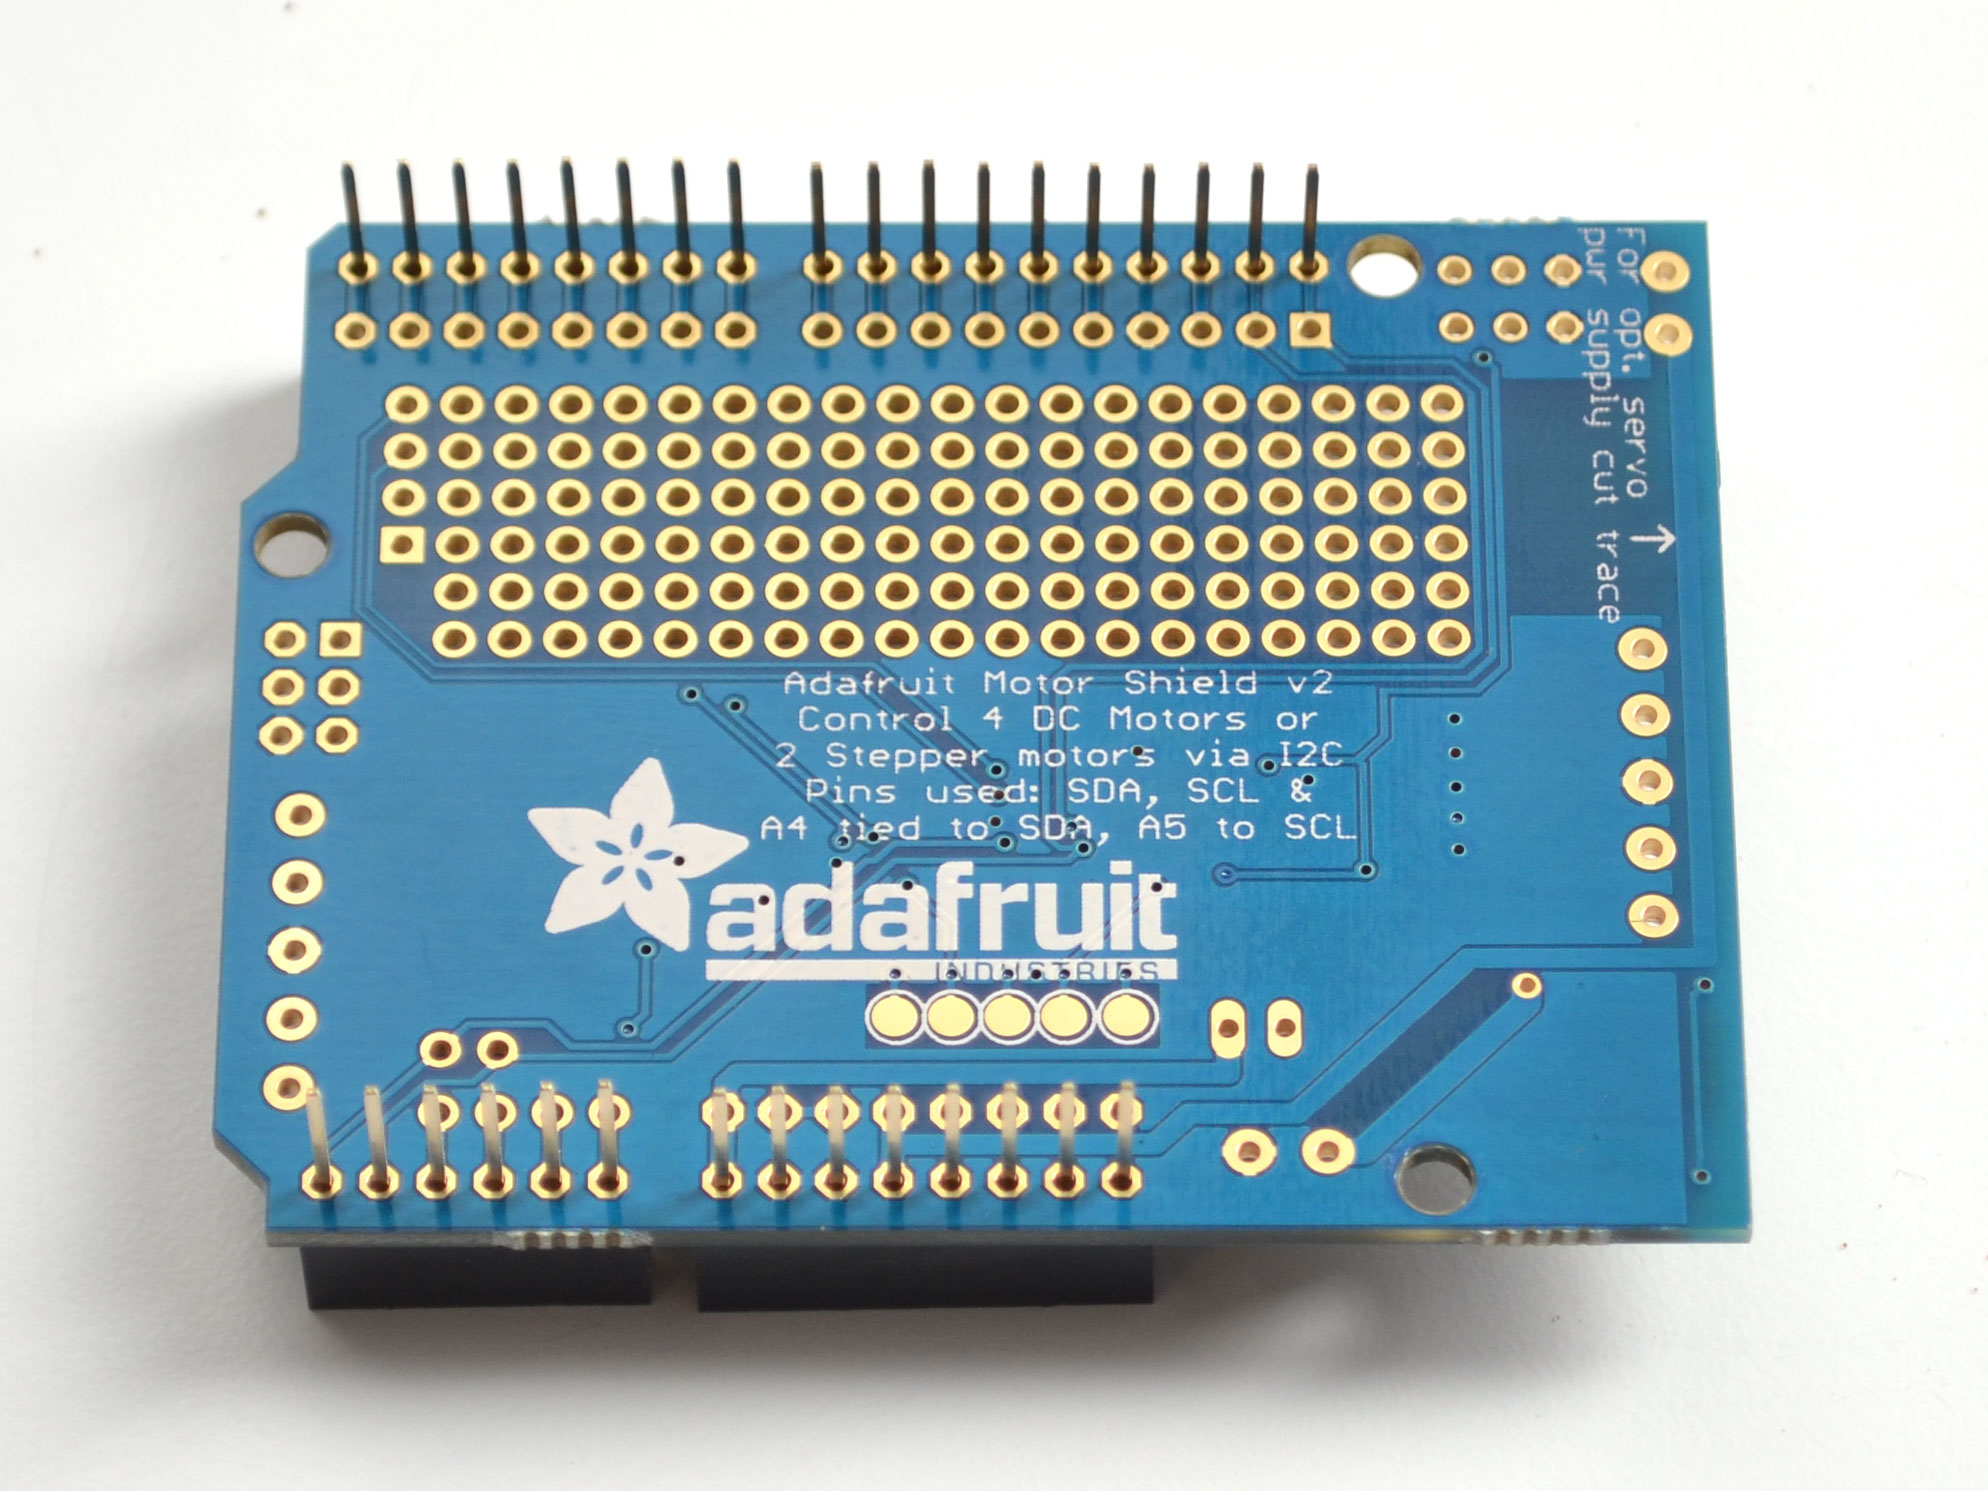 adafruit_products_stackyplace.jpg